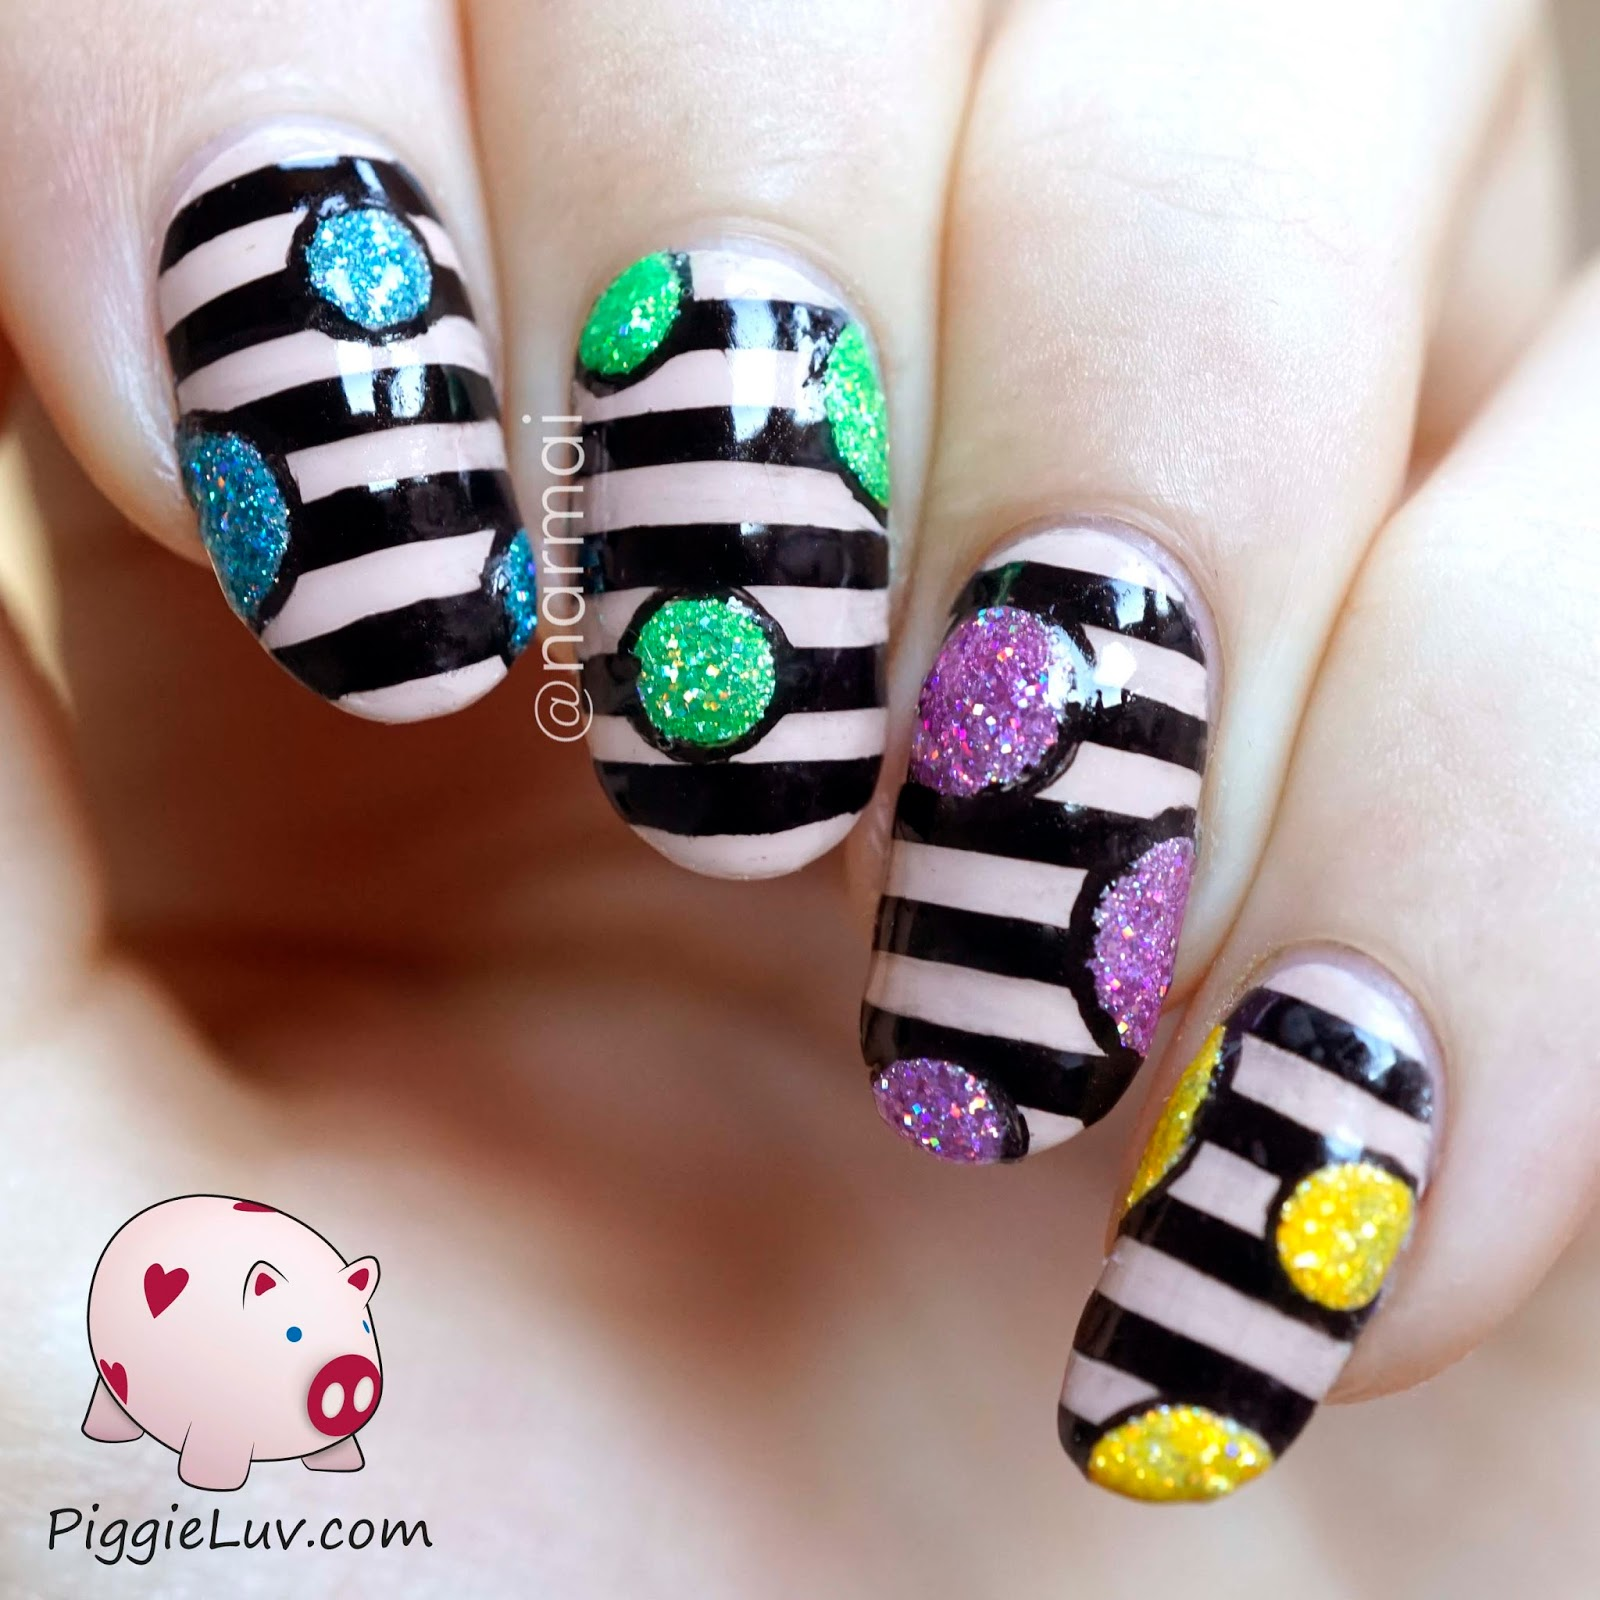 Piggieluv stripey nail art design with glitter orbs todays design is inspired by nailuminium i saw this design of hers and i love it and i kept wondering what it would look like with a little bit of prinsesfo Image collections